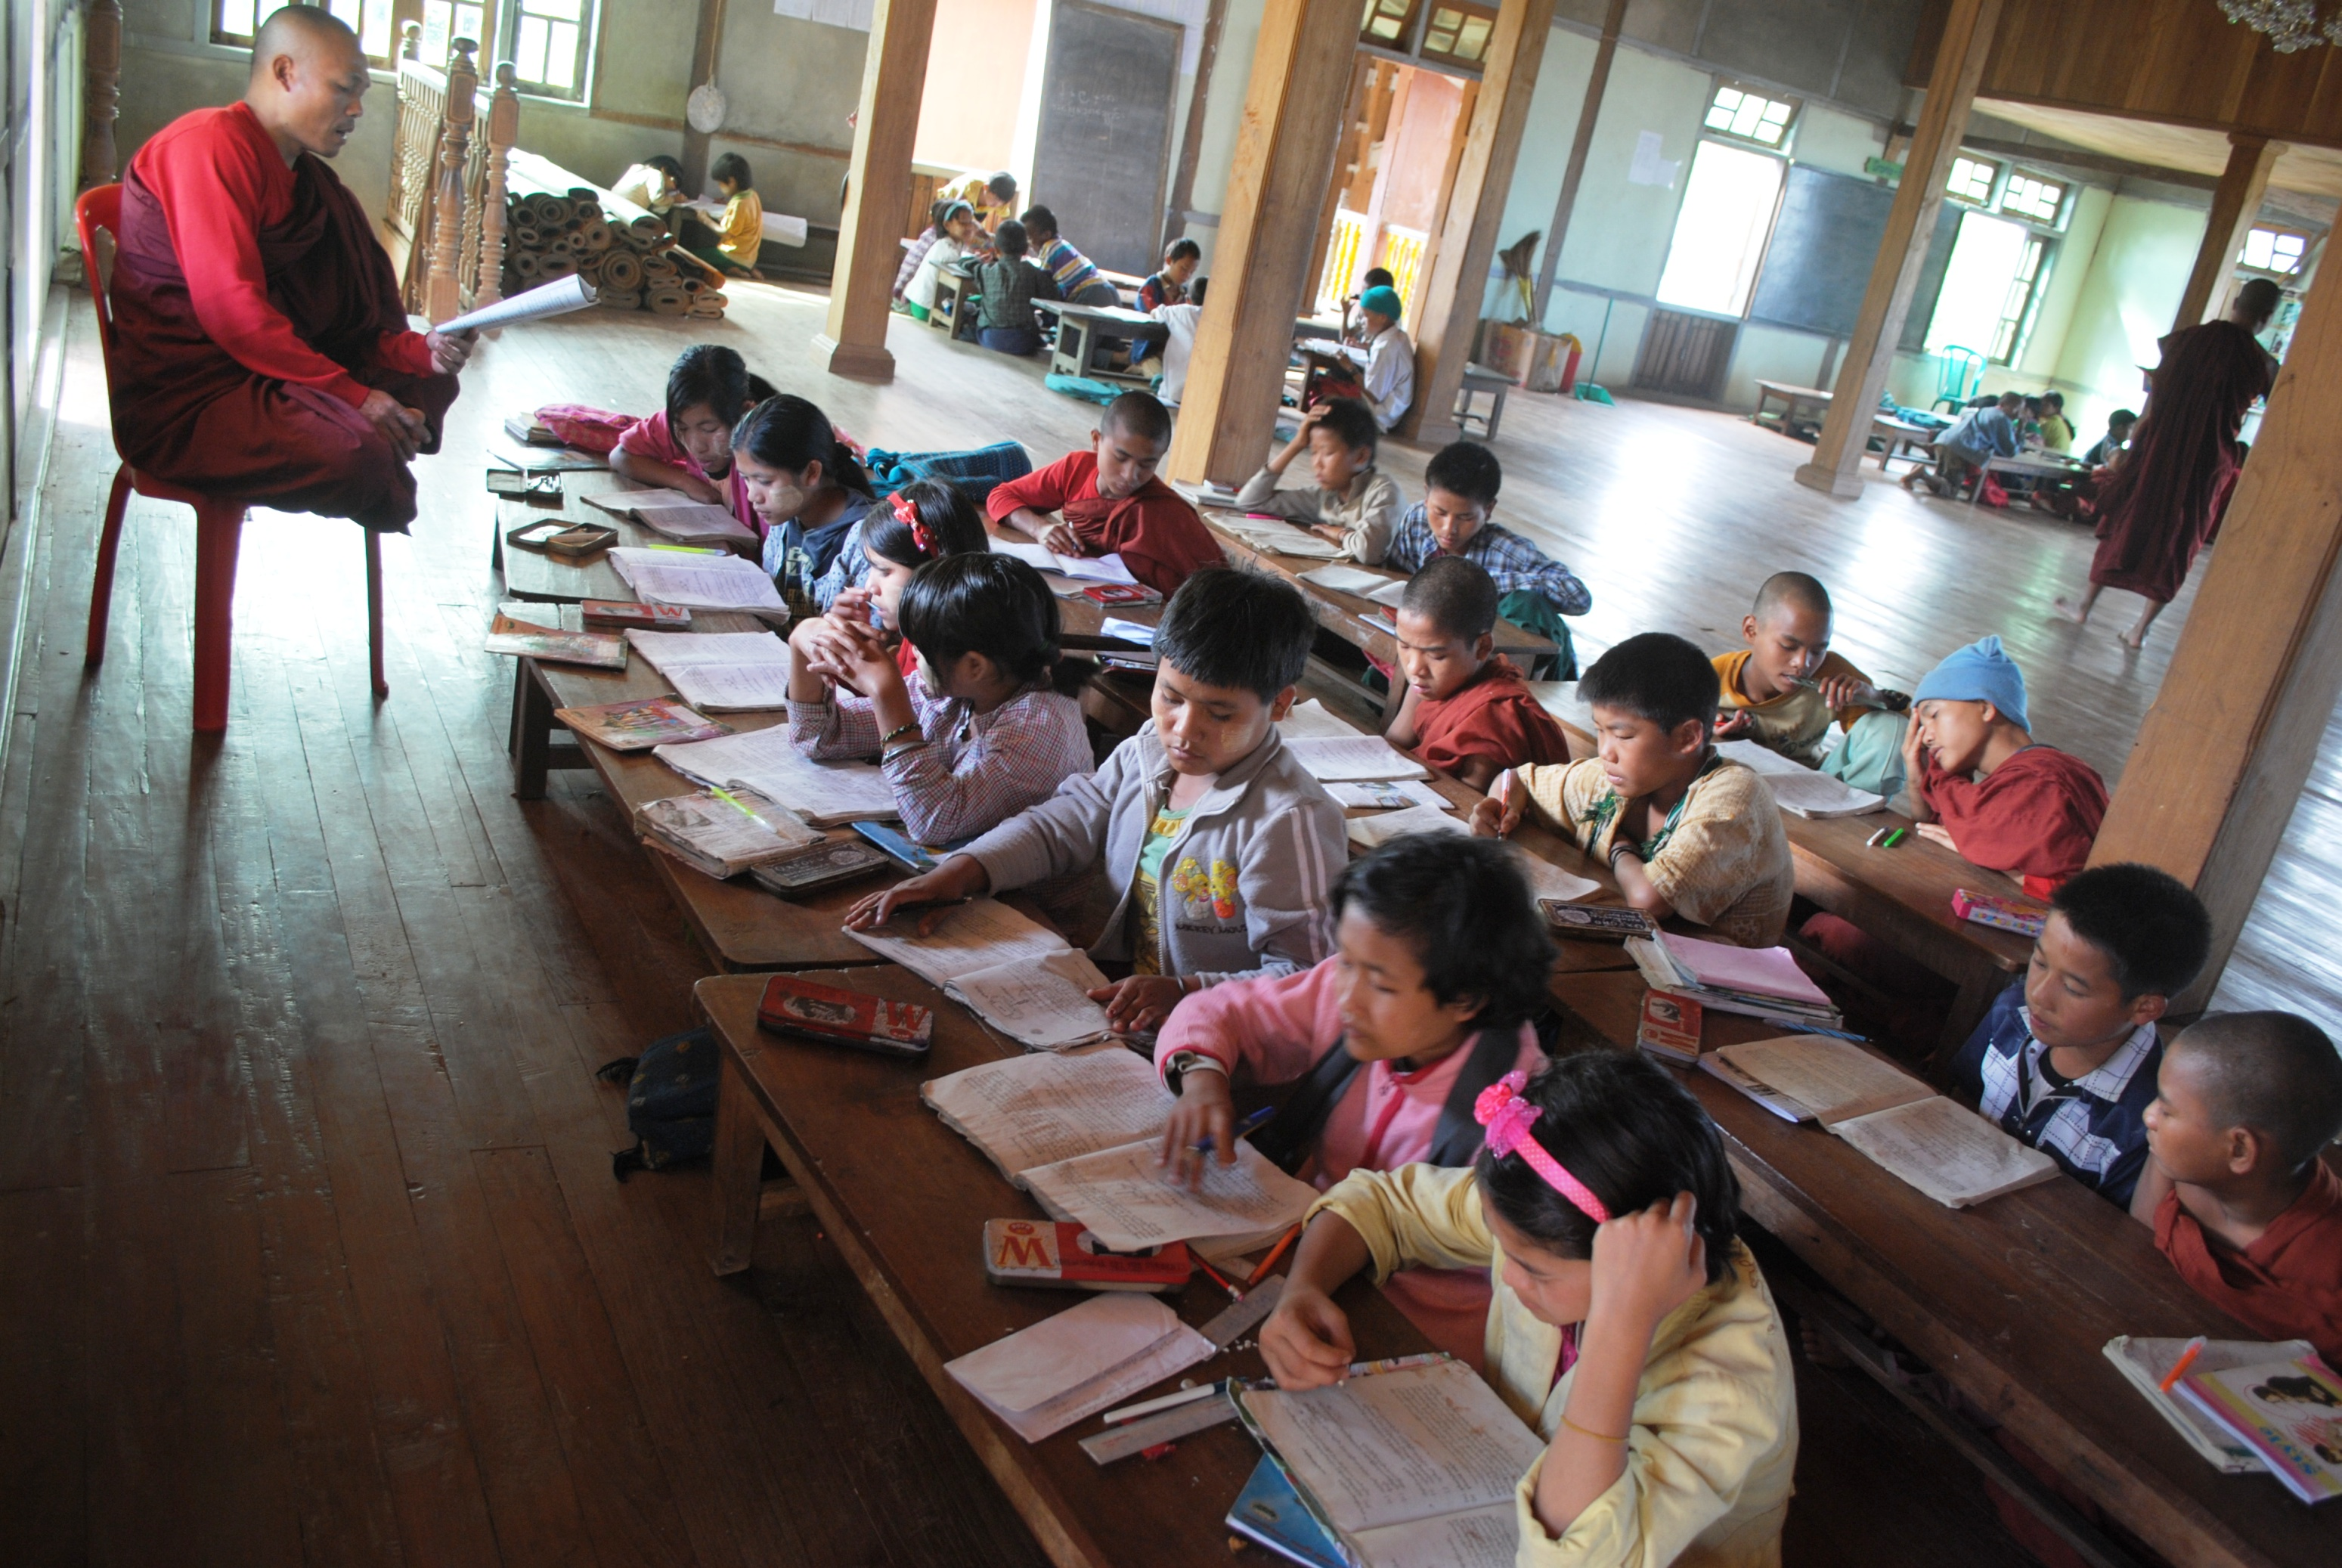 A monastic school of 120 students in Kanpetlet township in Chin State